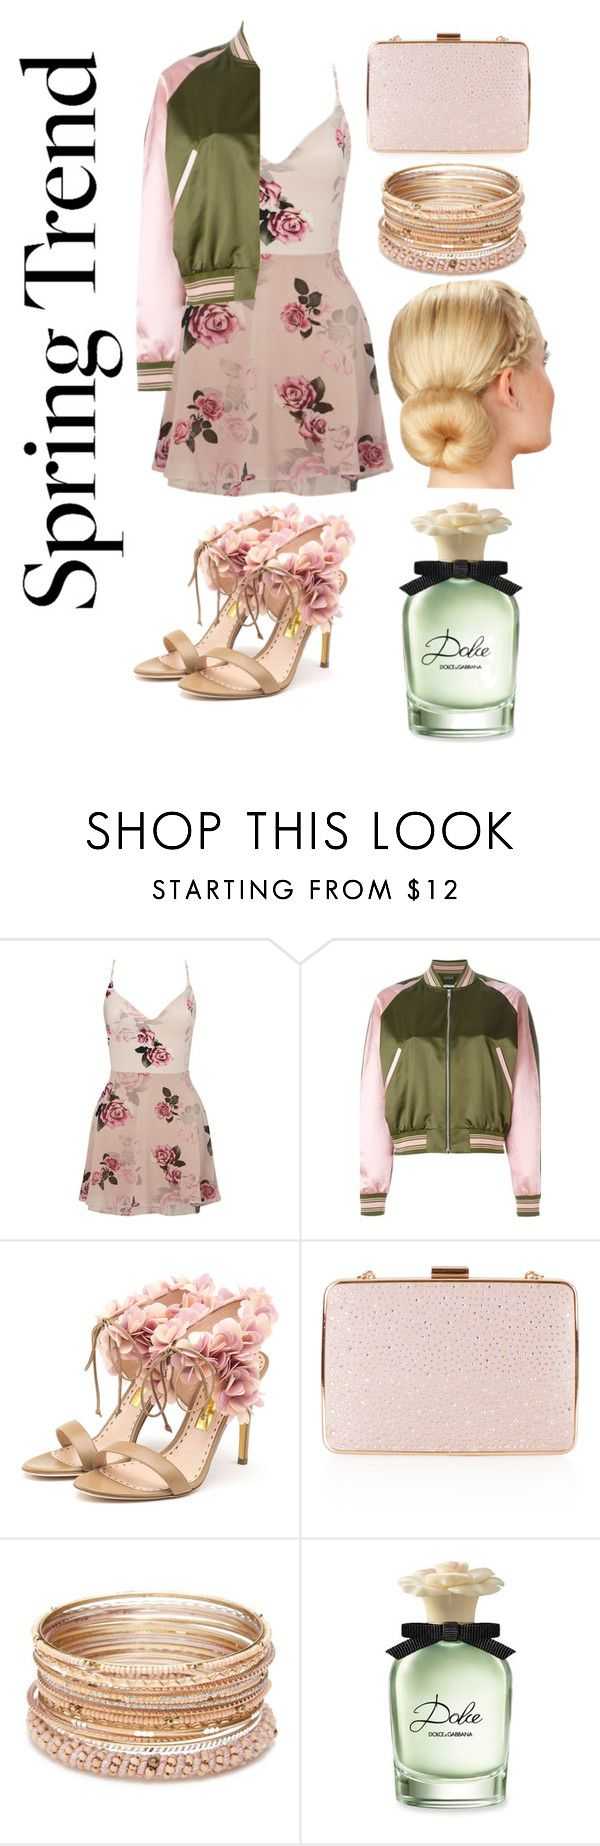 """""""Pink And Green..."""" by allenstefanie ❤ liked on Polyvore featuring Lipsy, Alexander McQueen, Rupert Sanderson, Monsoon, Red Camel and Dolce&Gabbana"""